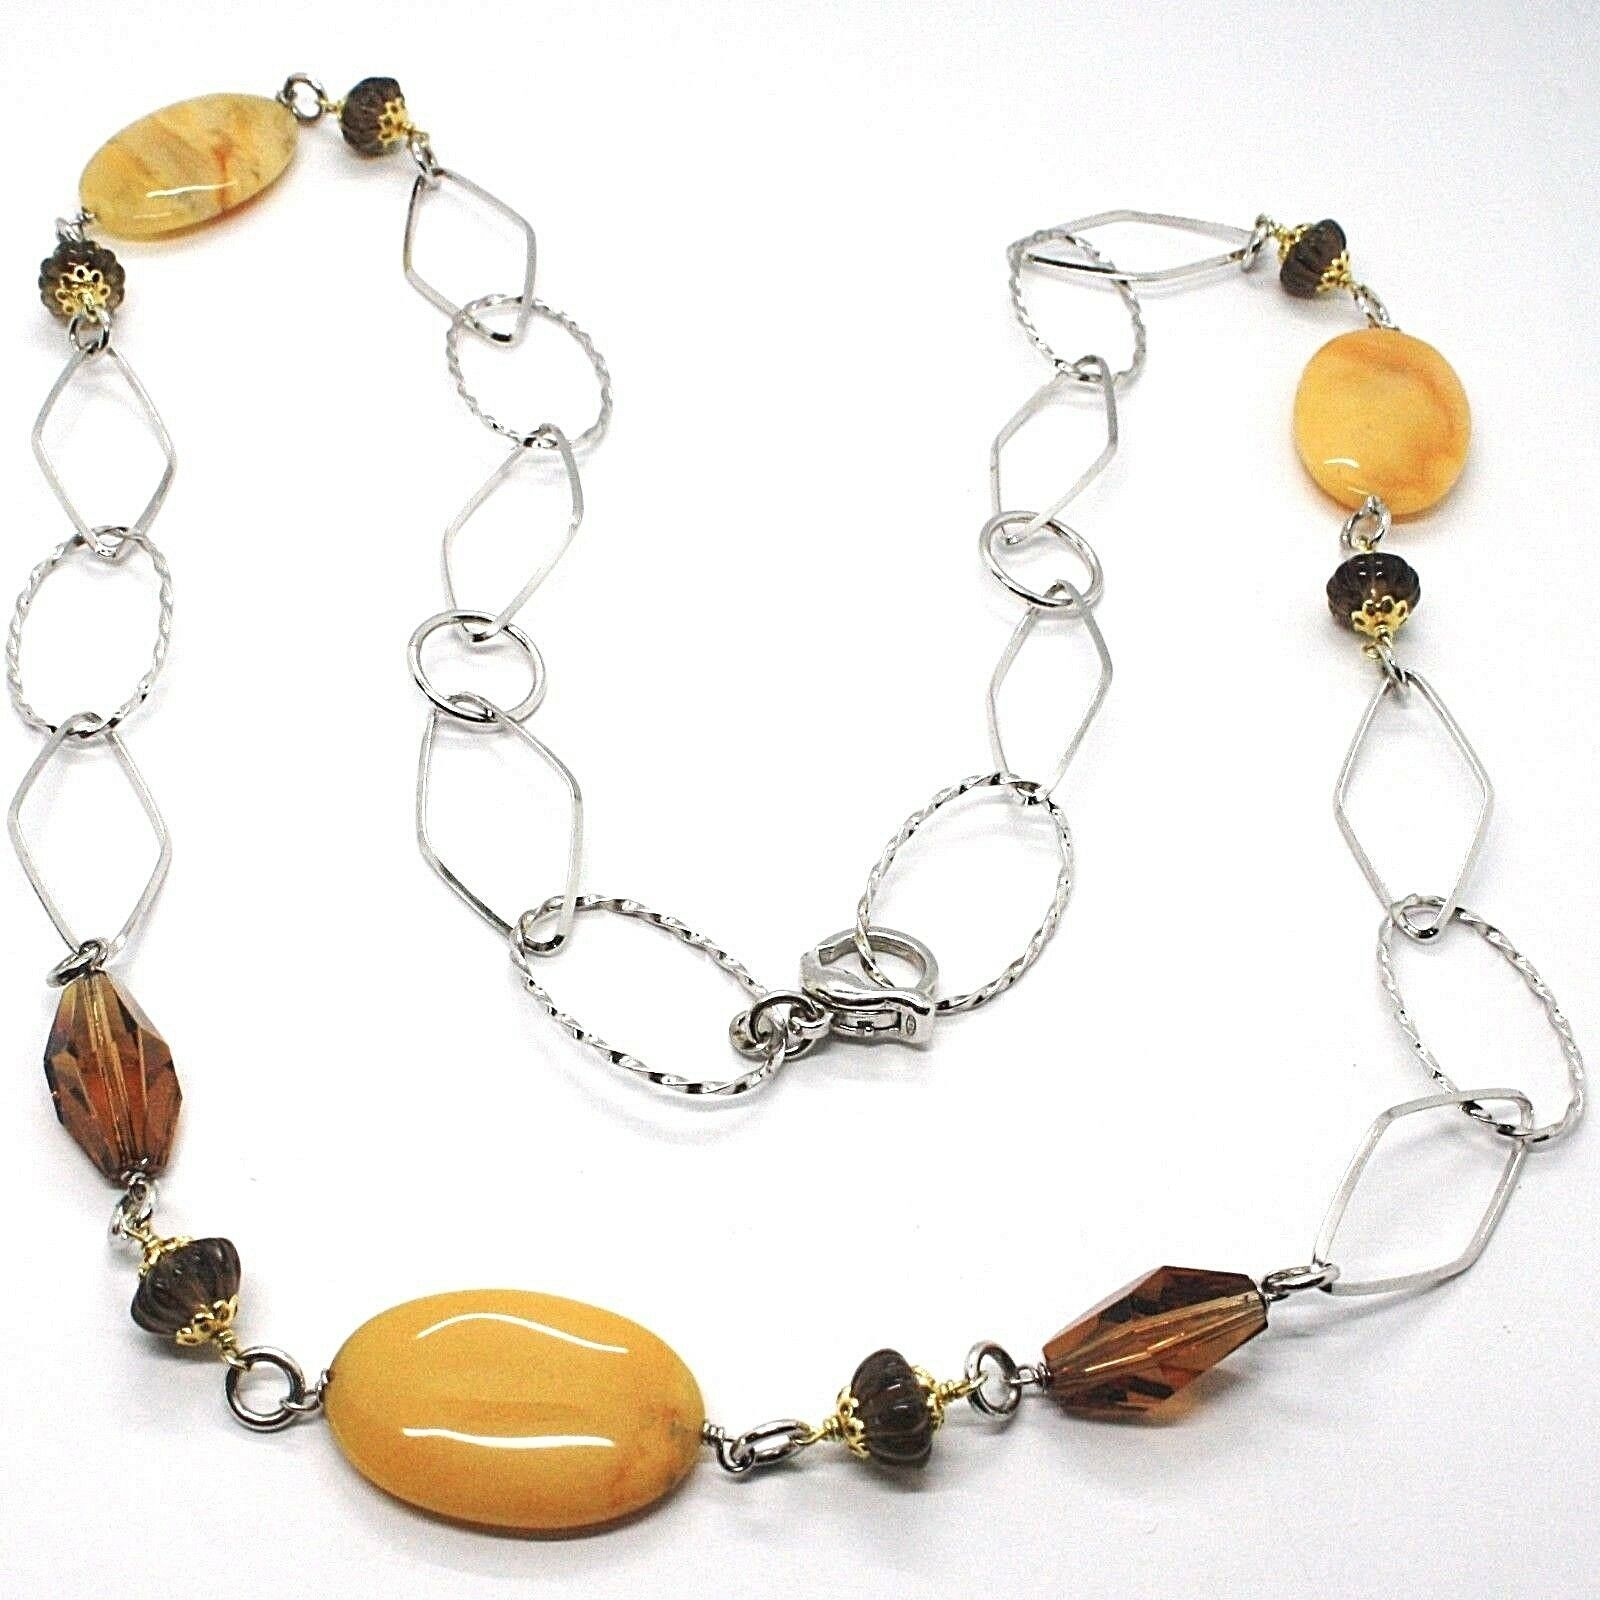 Necklace Silver 925, Jade Brown Oval, Quartz Smoky, Long 80 CM